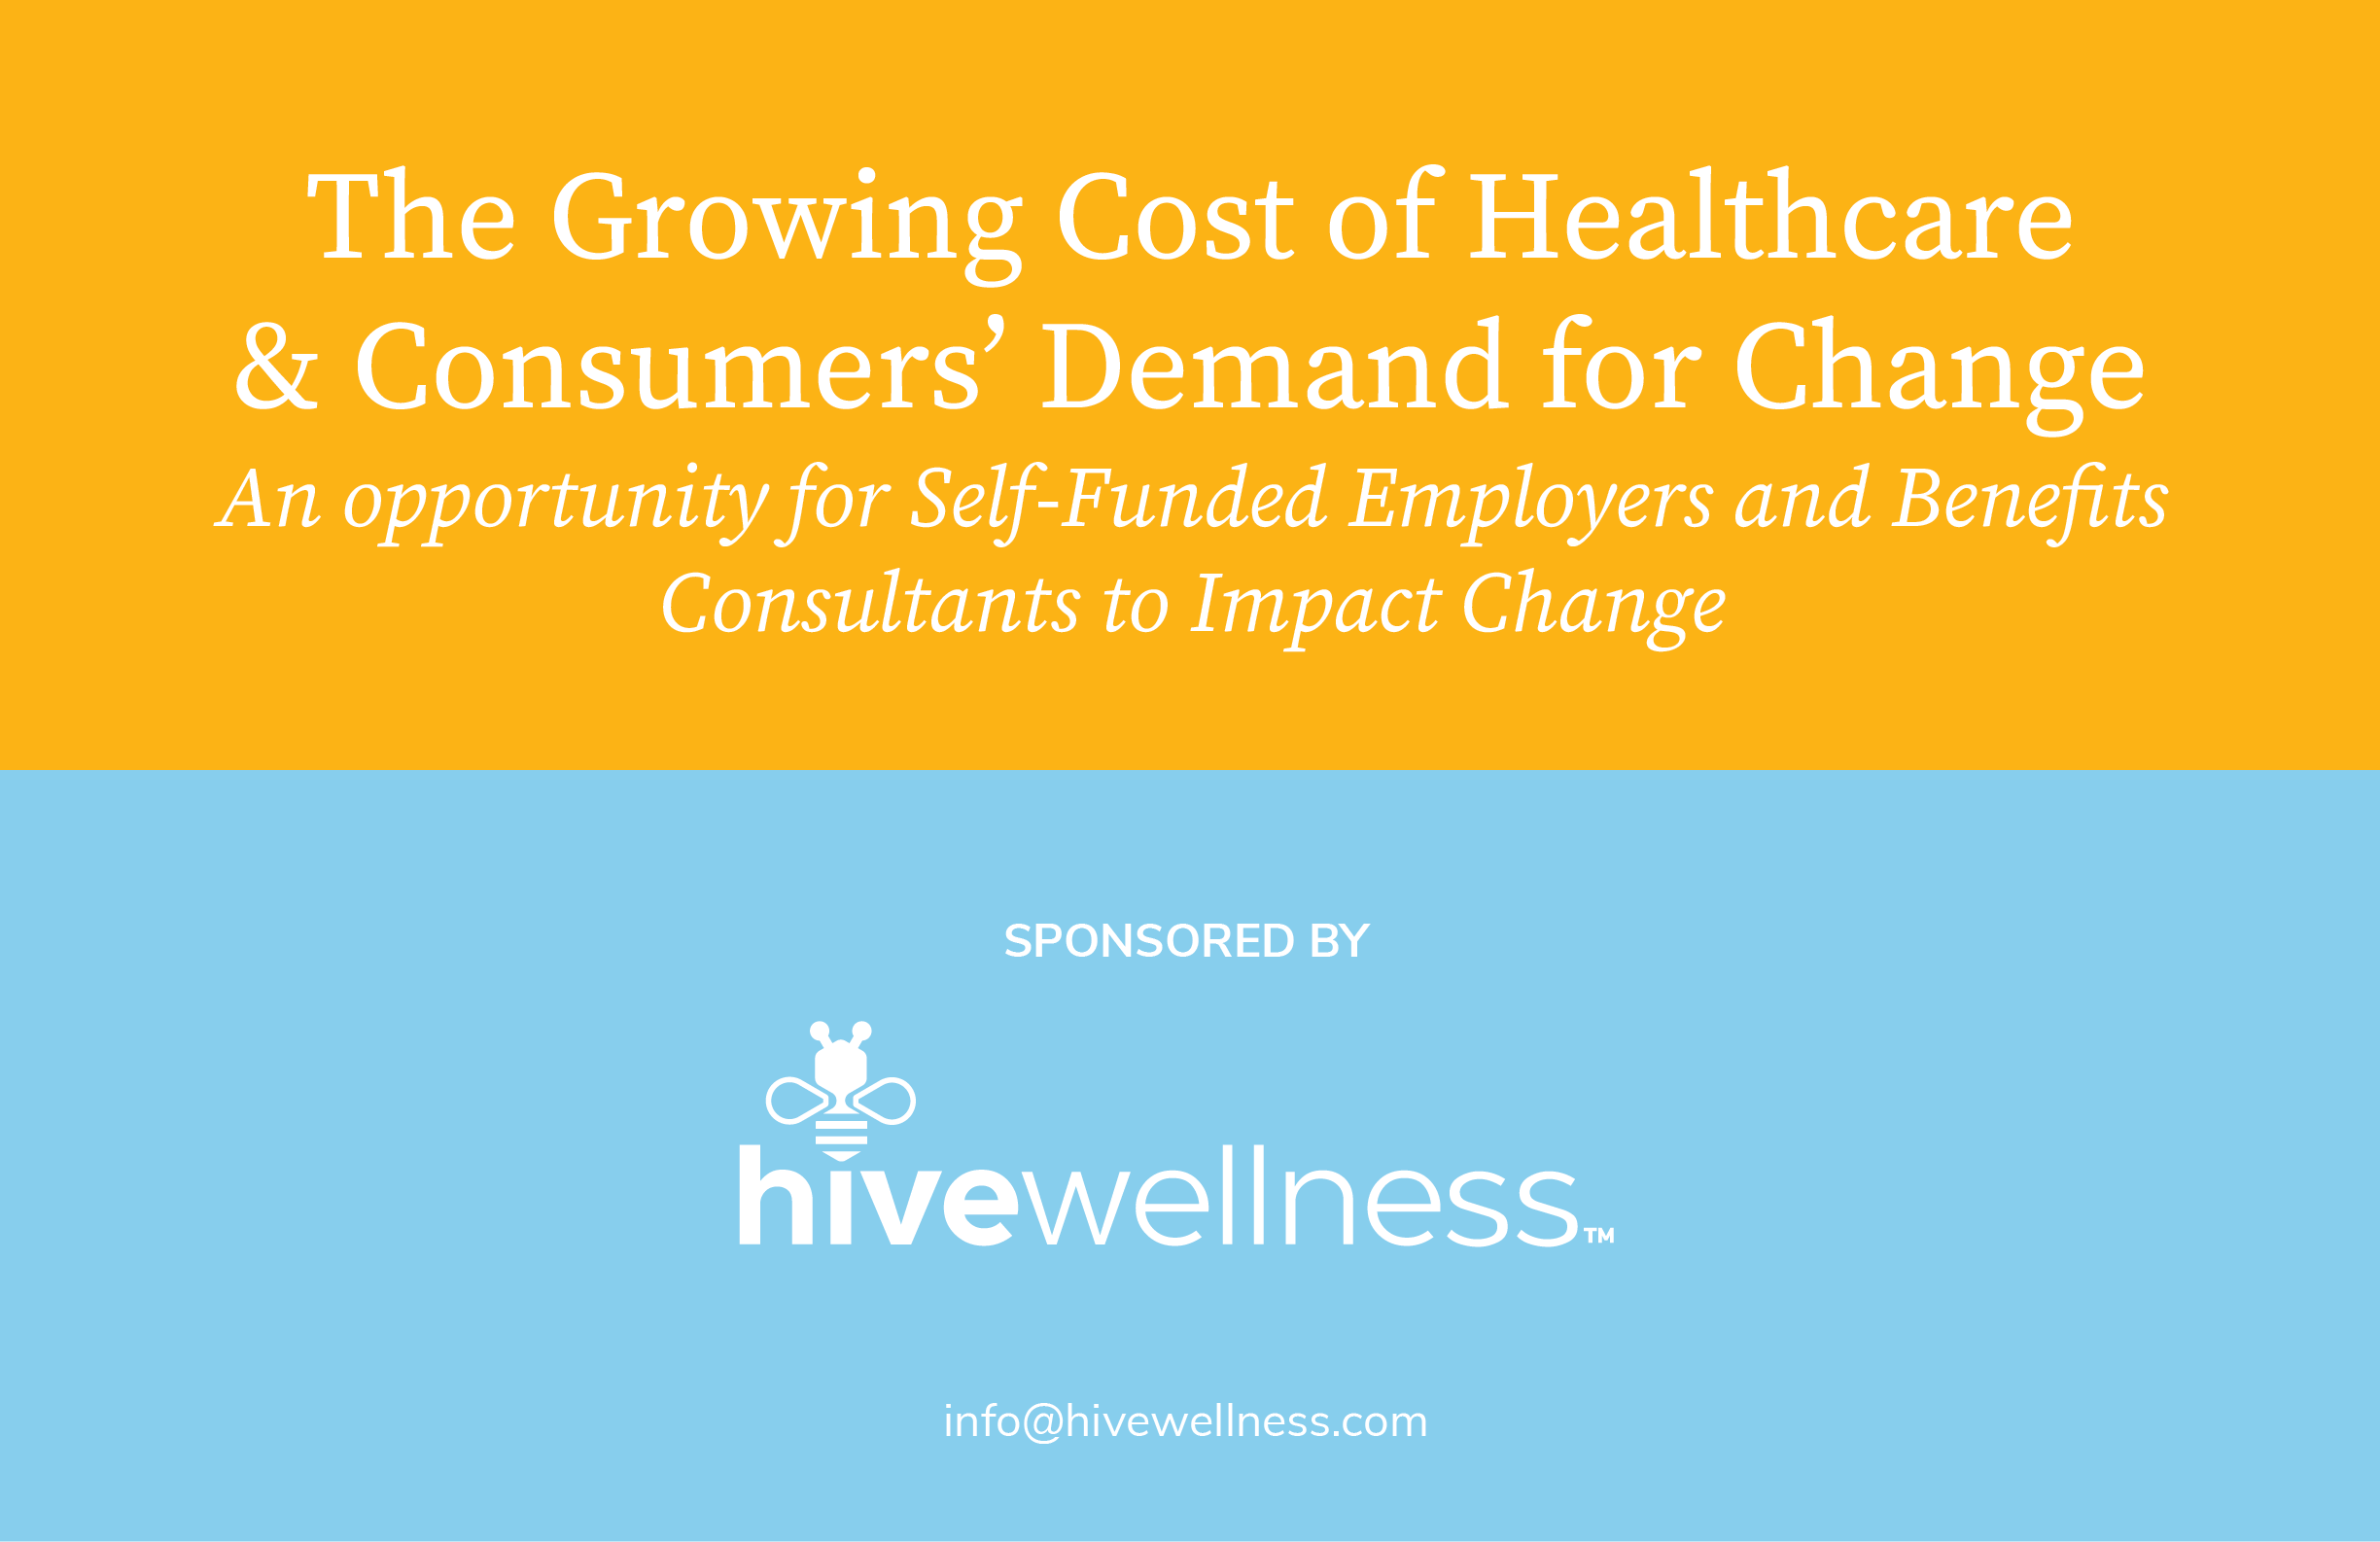 The Growing Cost of Healthcare